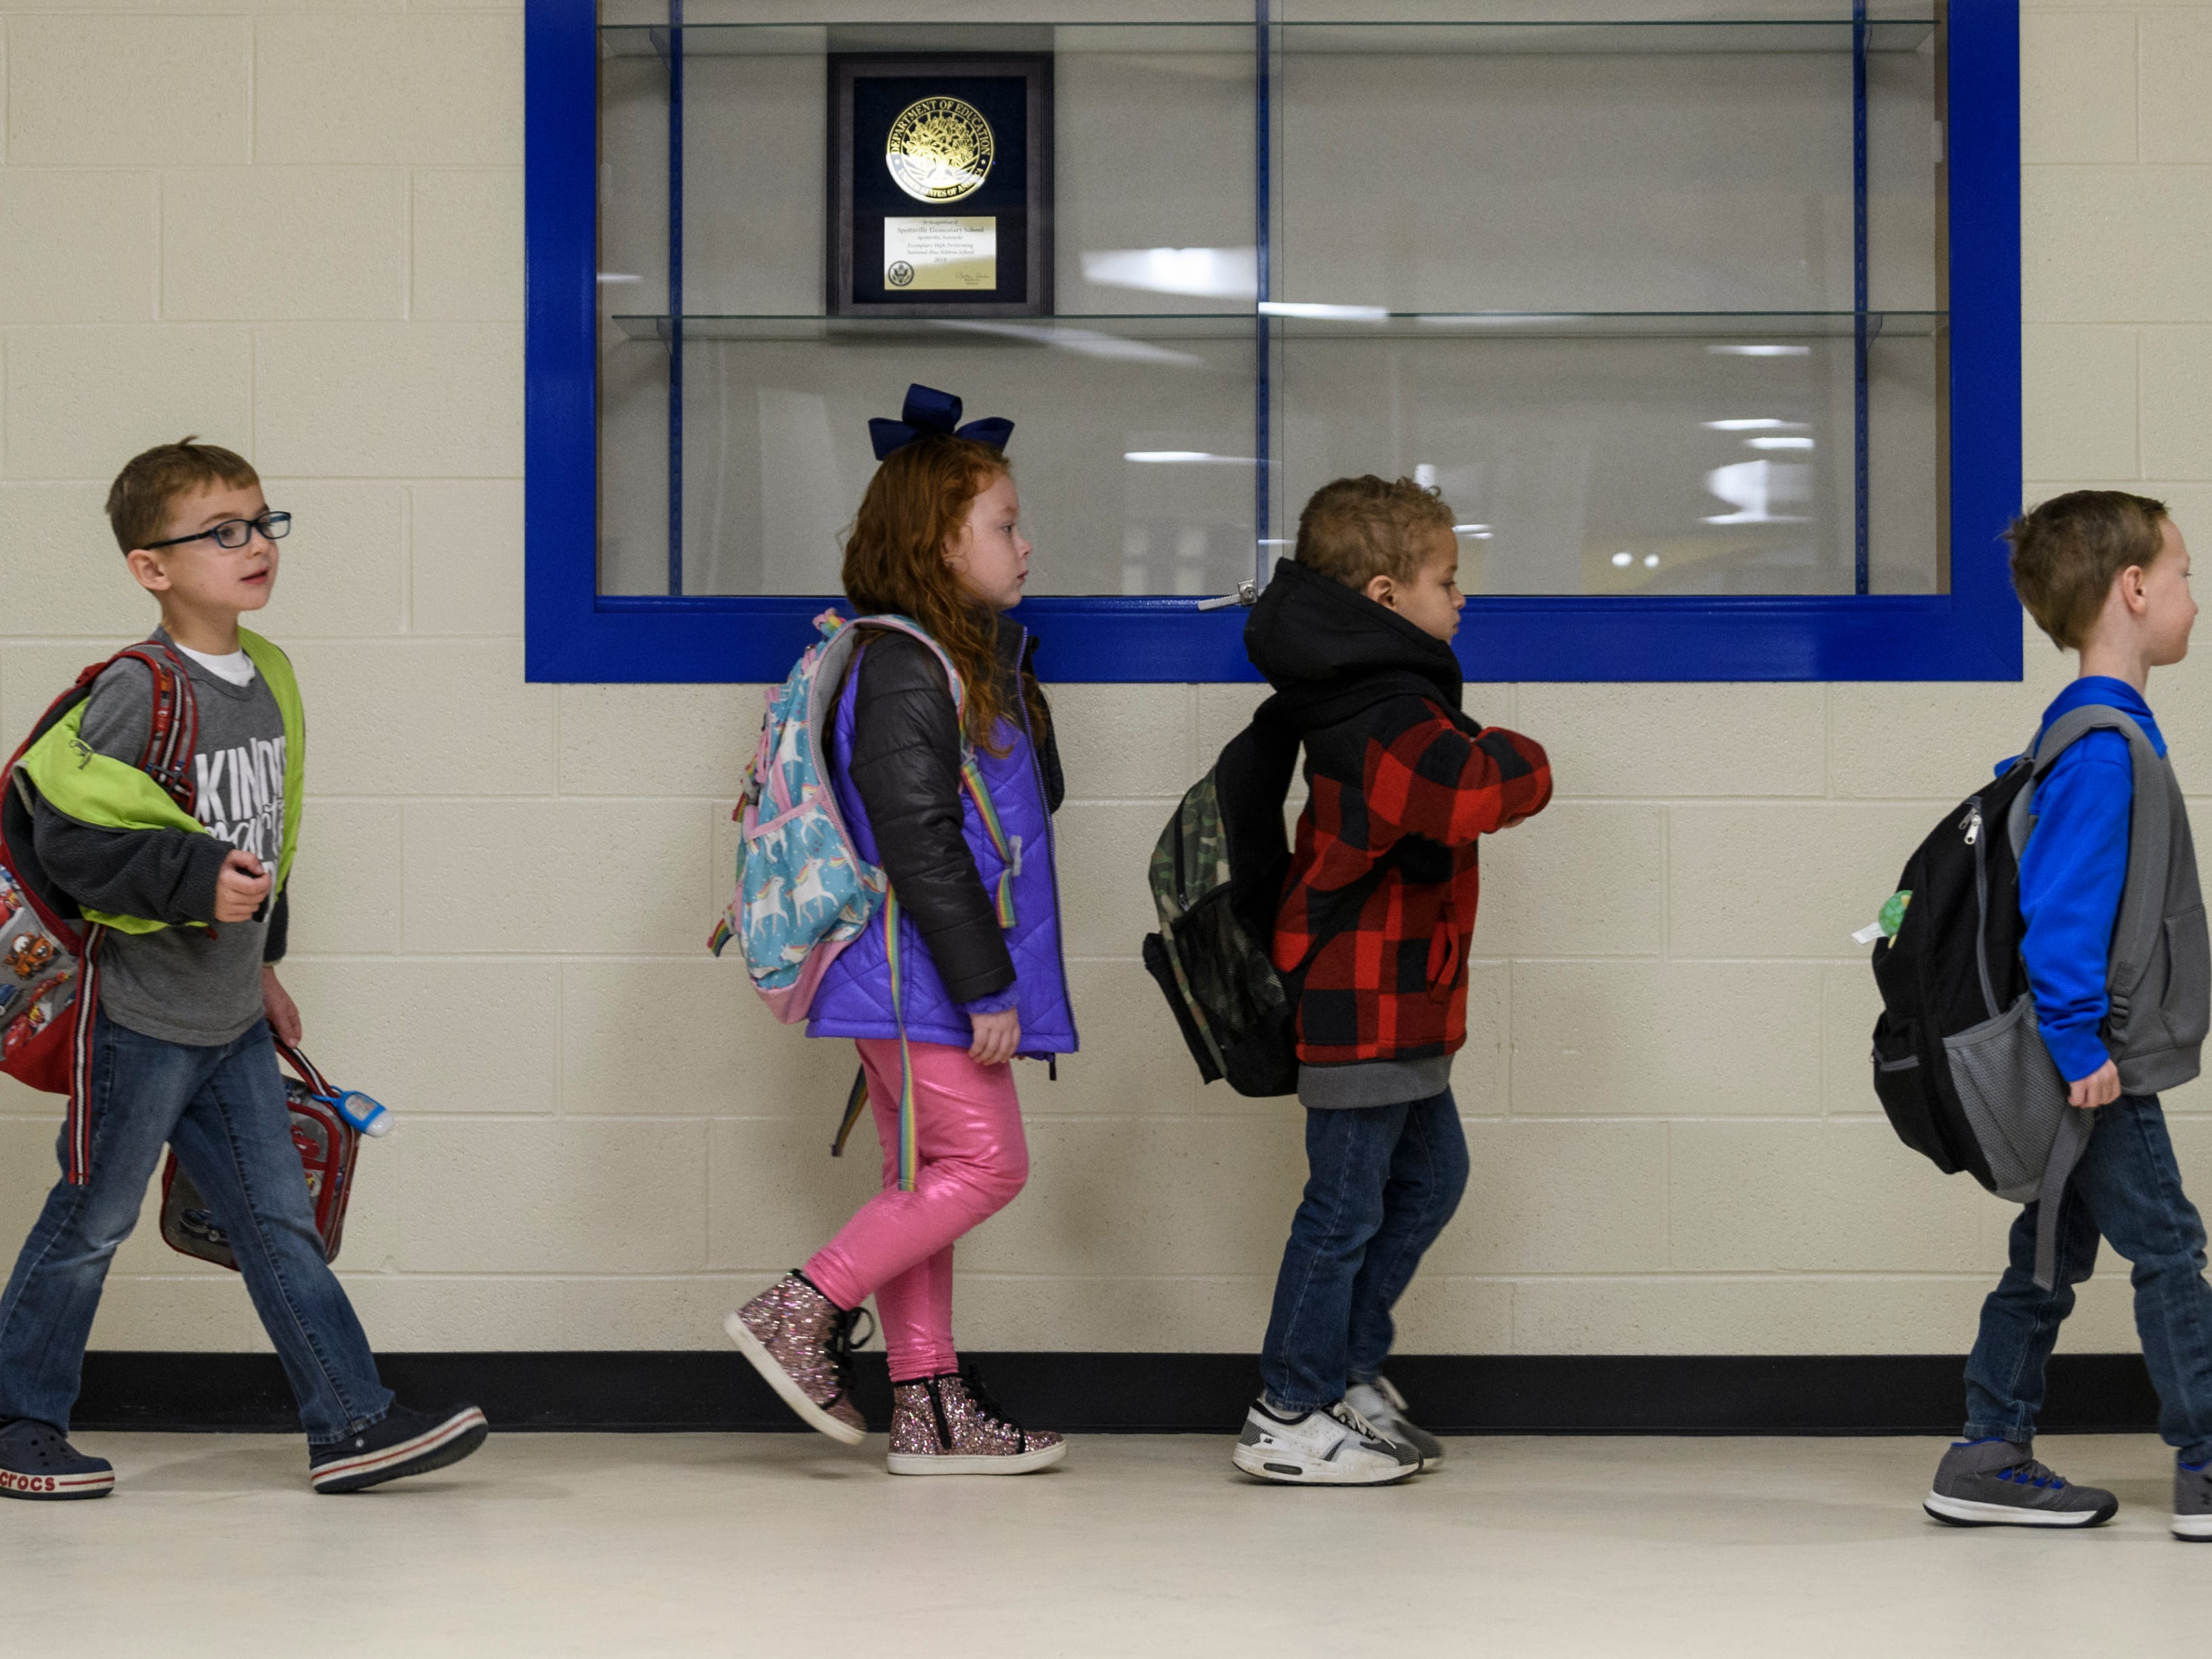 Students walk to their classrooms, past the awards case that holds a 2018 National Blue Ribbon School plaque,  during the first school day inside the new Spottsville Elementary School building, Monday morning, Nov. 12, 2018.